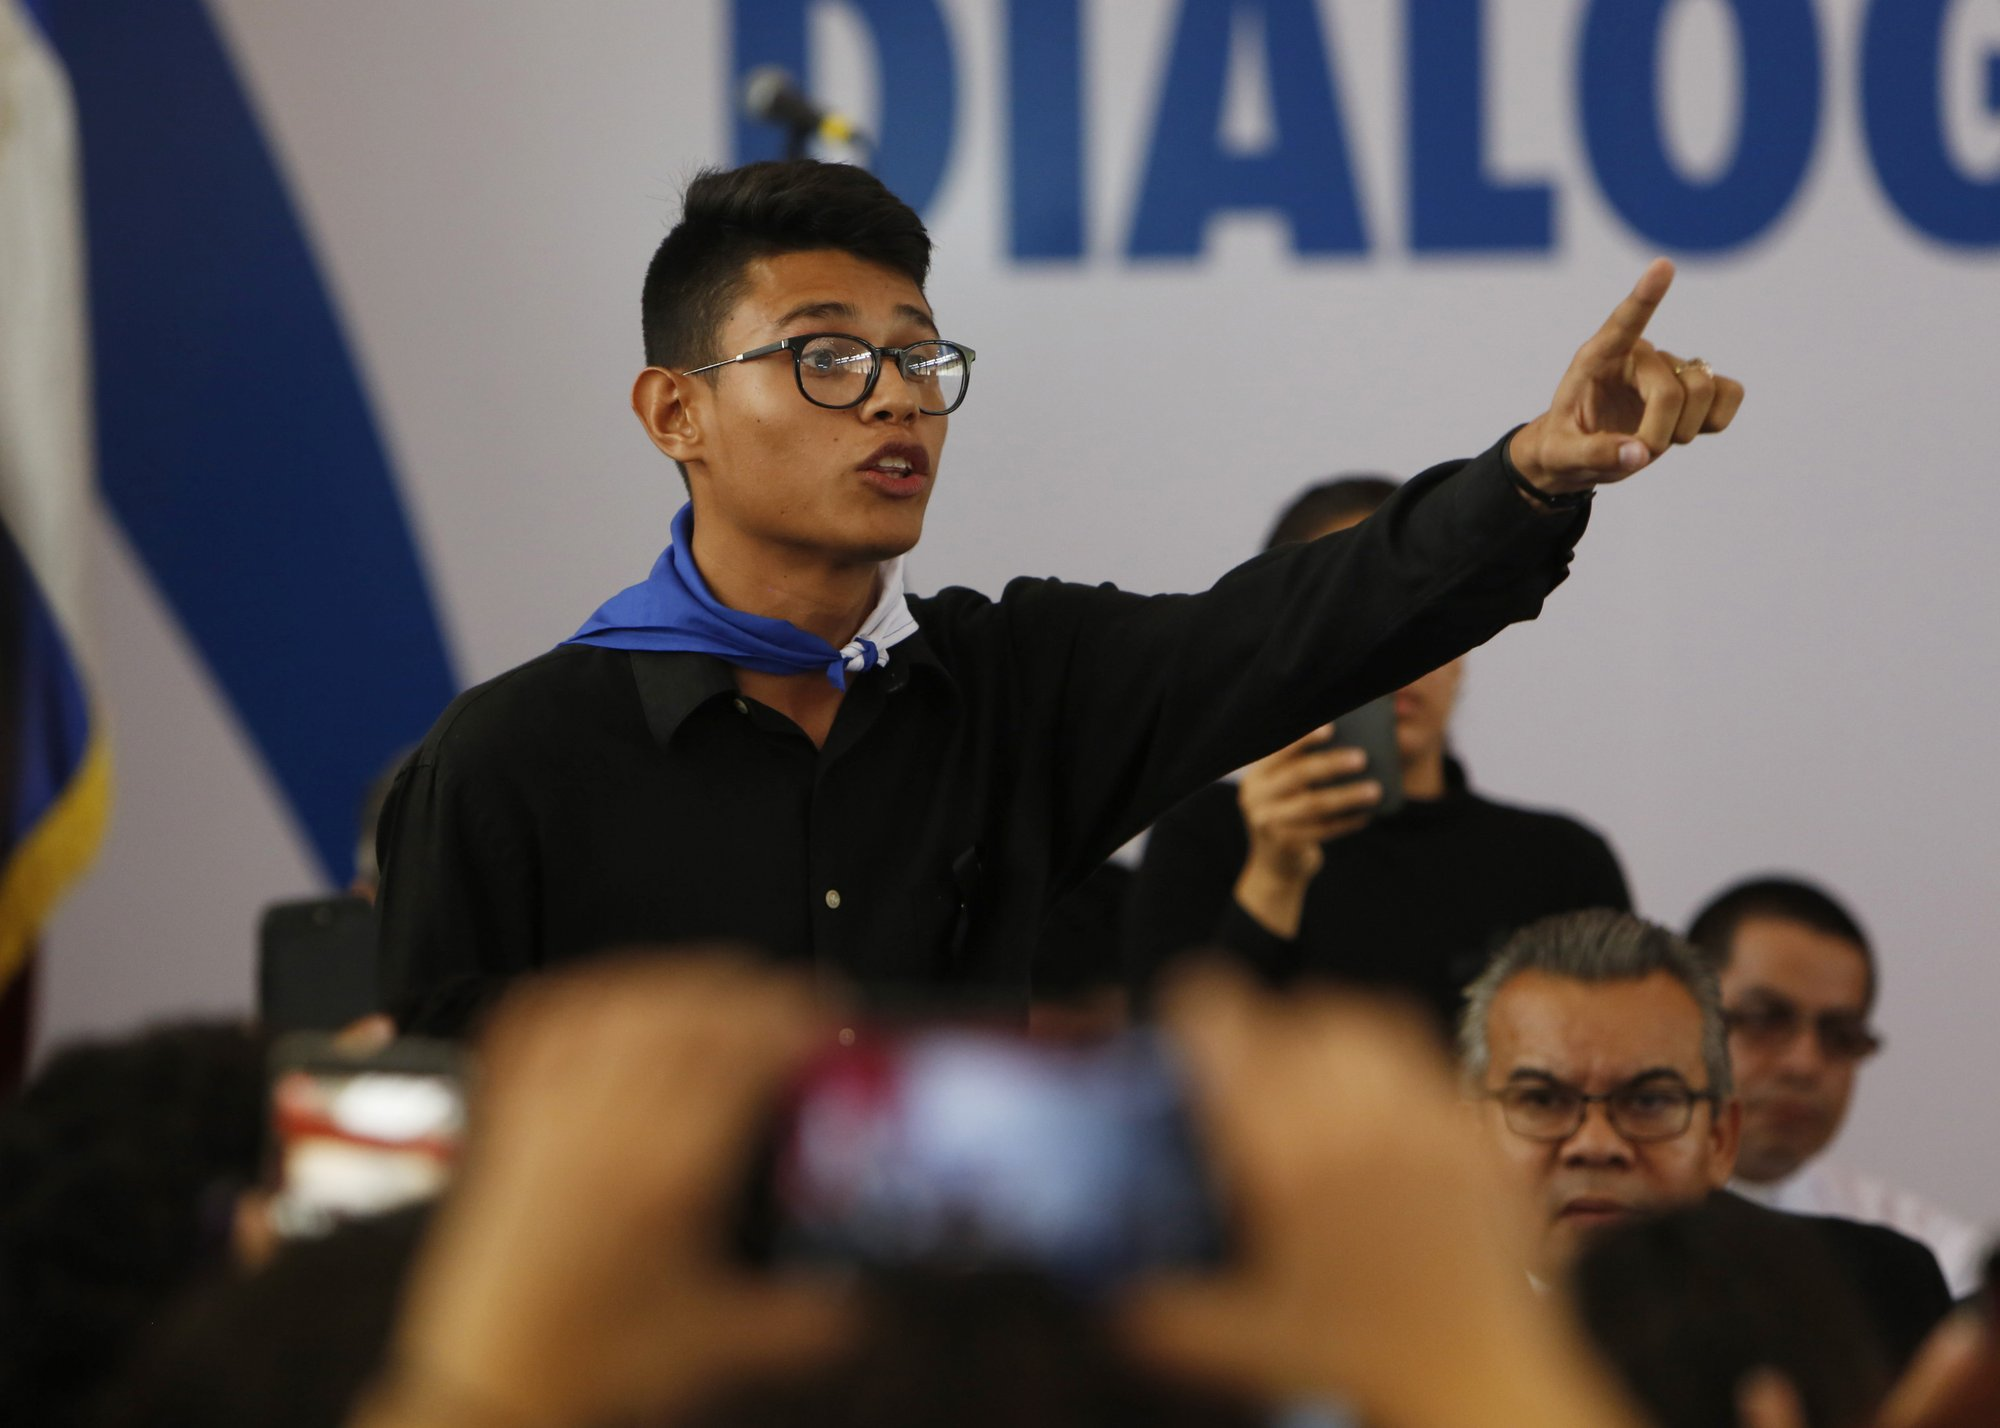 Student leader who confronted Ortega returns to Nicaragua